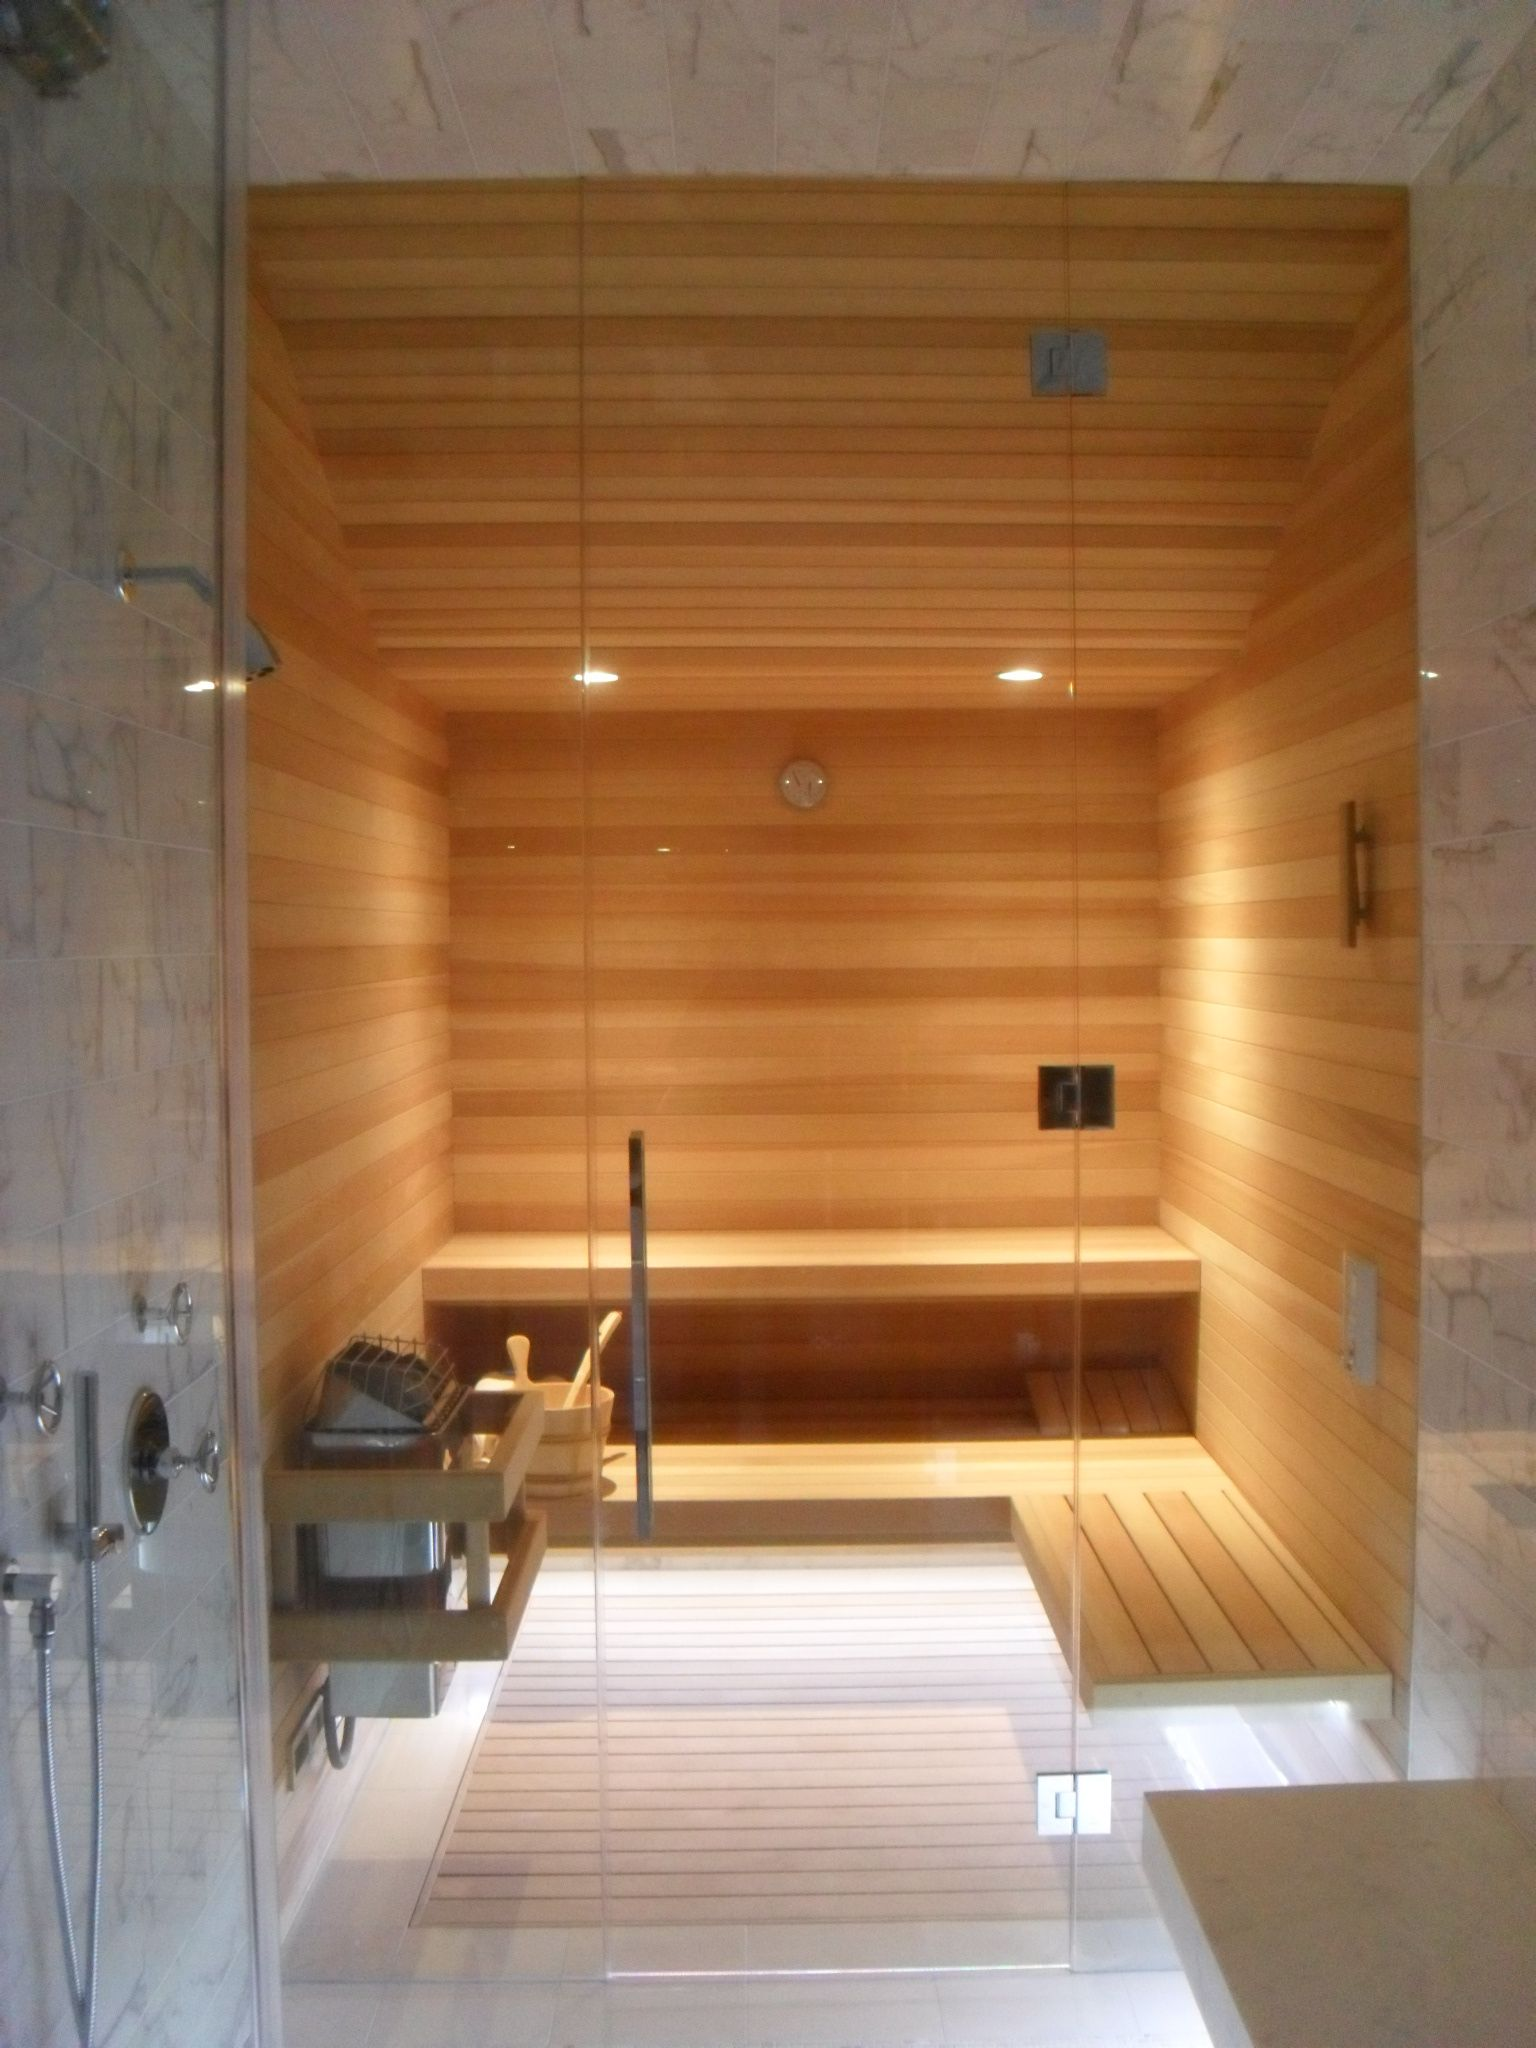 Fas Built Glass Wall Sauna With View Through Steam Room Sauna Room Sauna Design Amazing Bathrooms